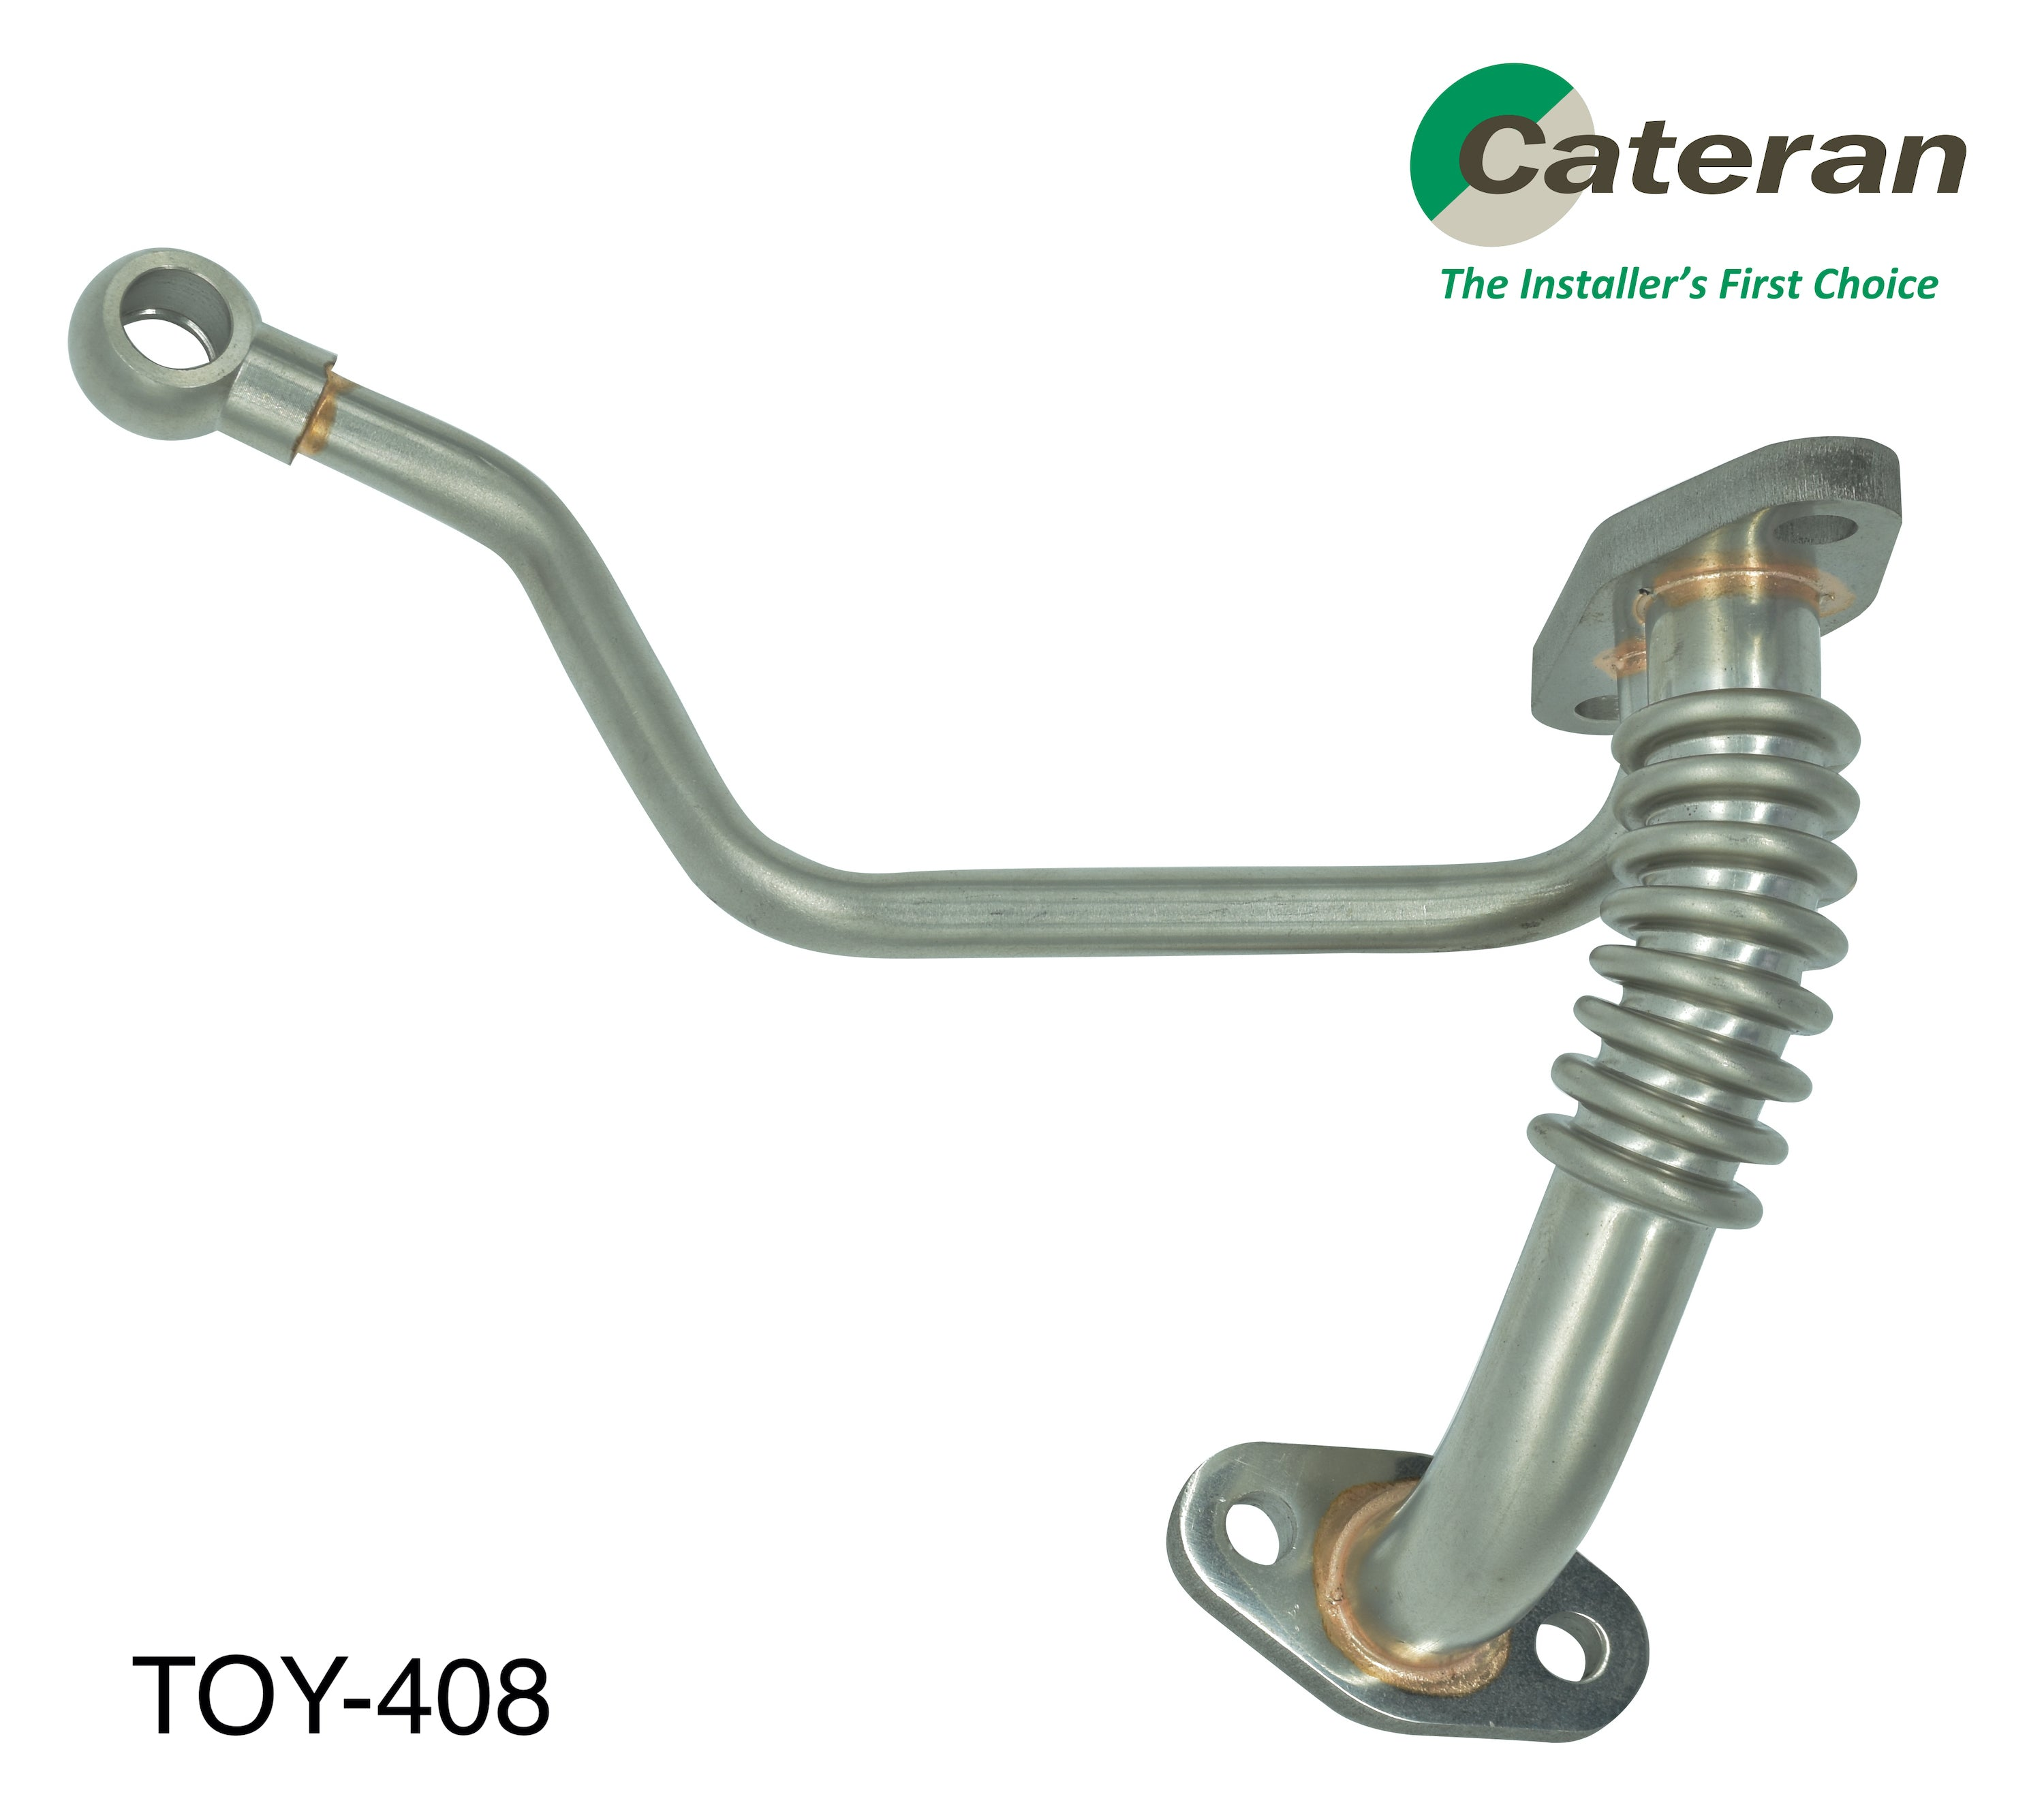 TOYOTA PRADO 120 Series 1KZ-TE 3.0L 4cyl SUV ALL TURBO - OIL LINE KIT